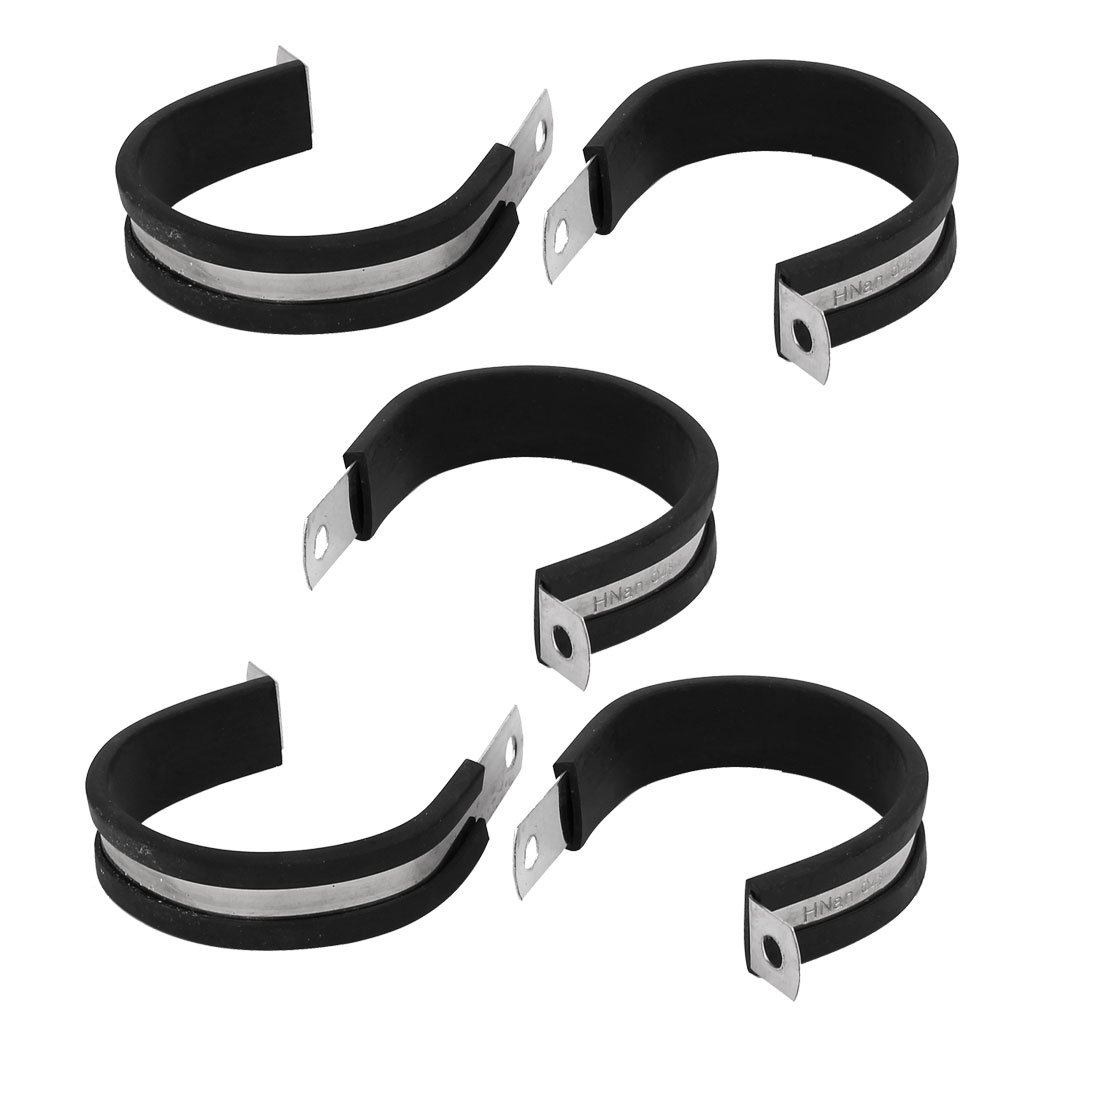 48mm Dia EPDM Rubber Lined P Clips Cable Hose Pipe Clamps Holder 5pcs 48mm Dia EPDM Rubber Lined P Clips Cable Hose Pipe Clamps Holder 5pcs